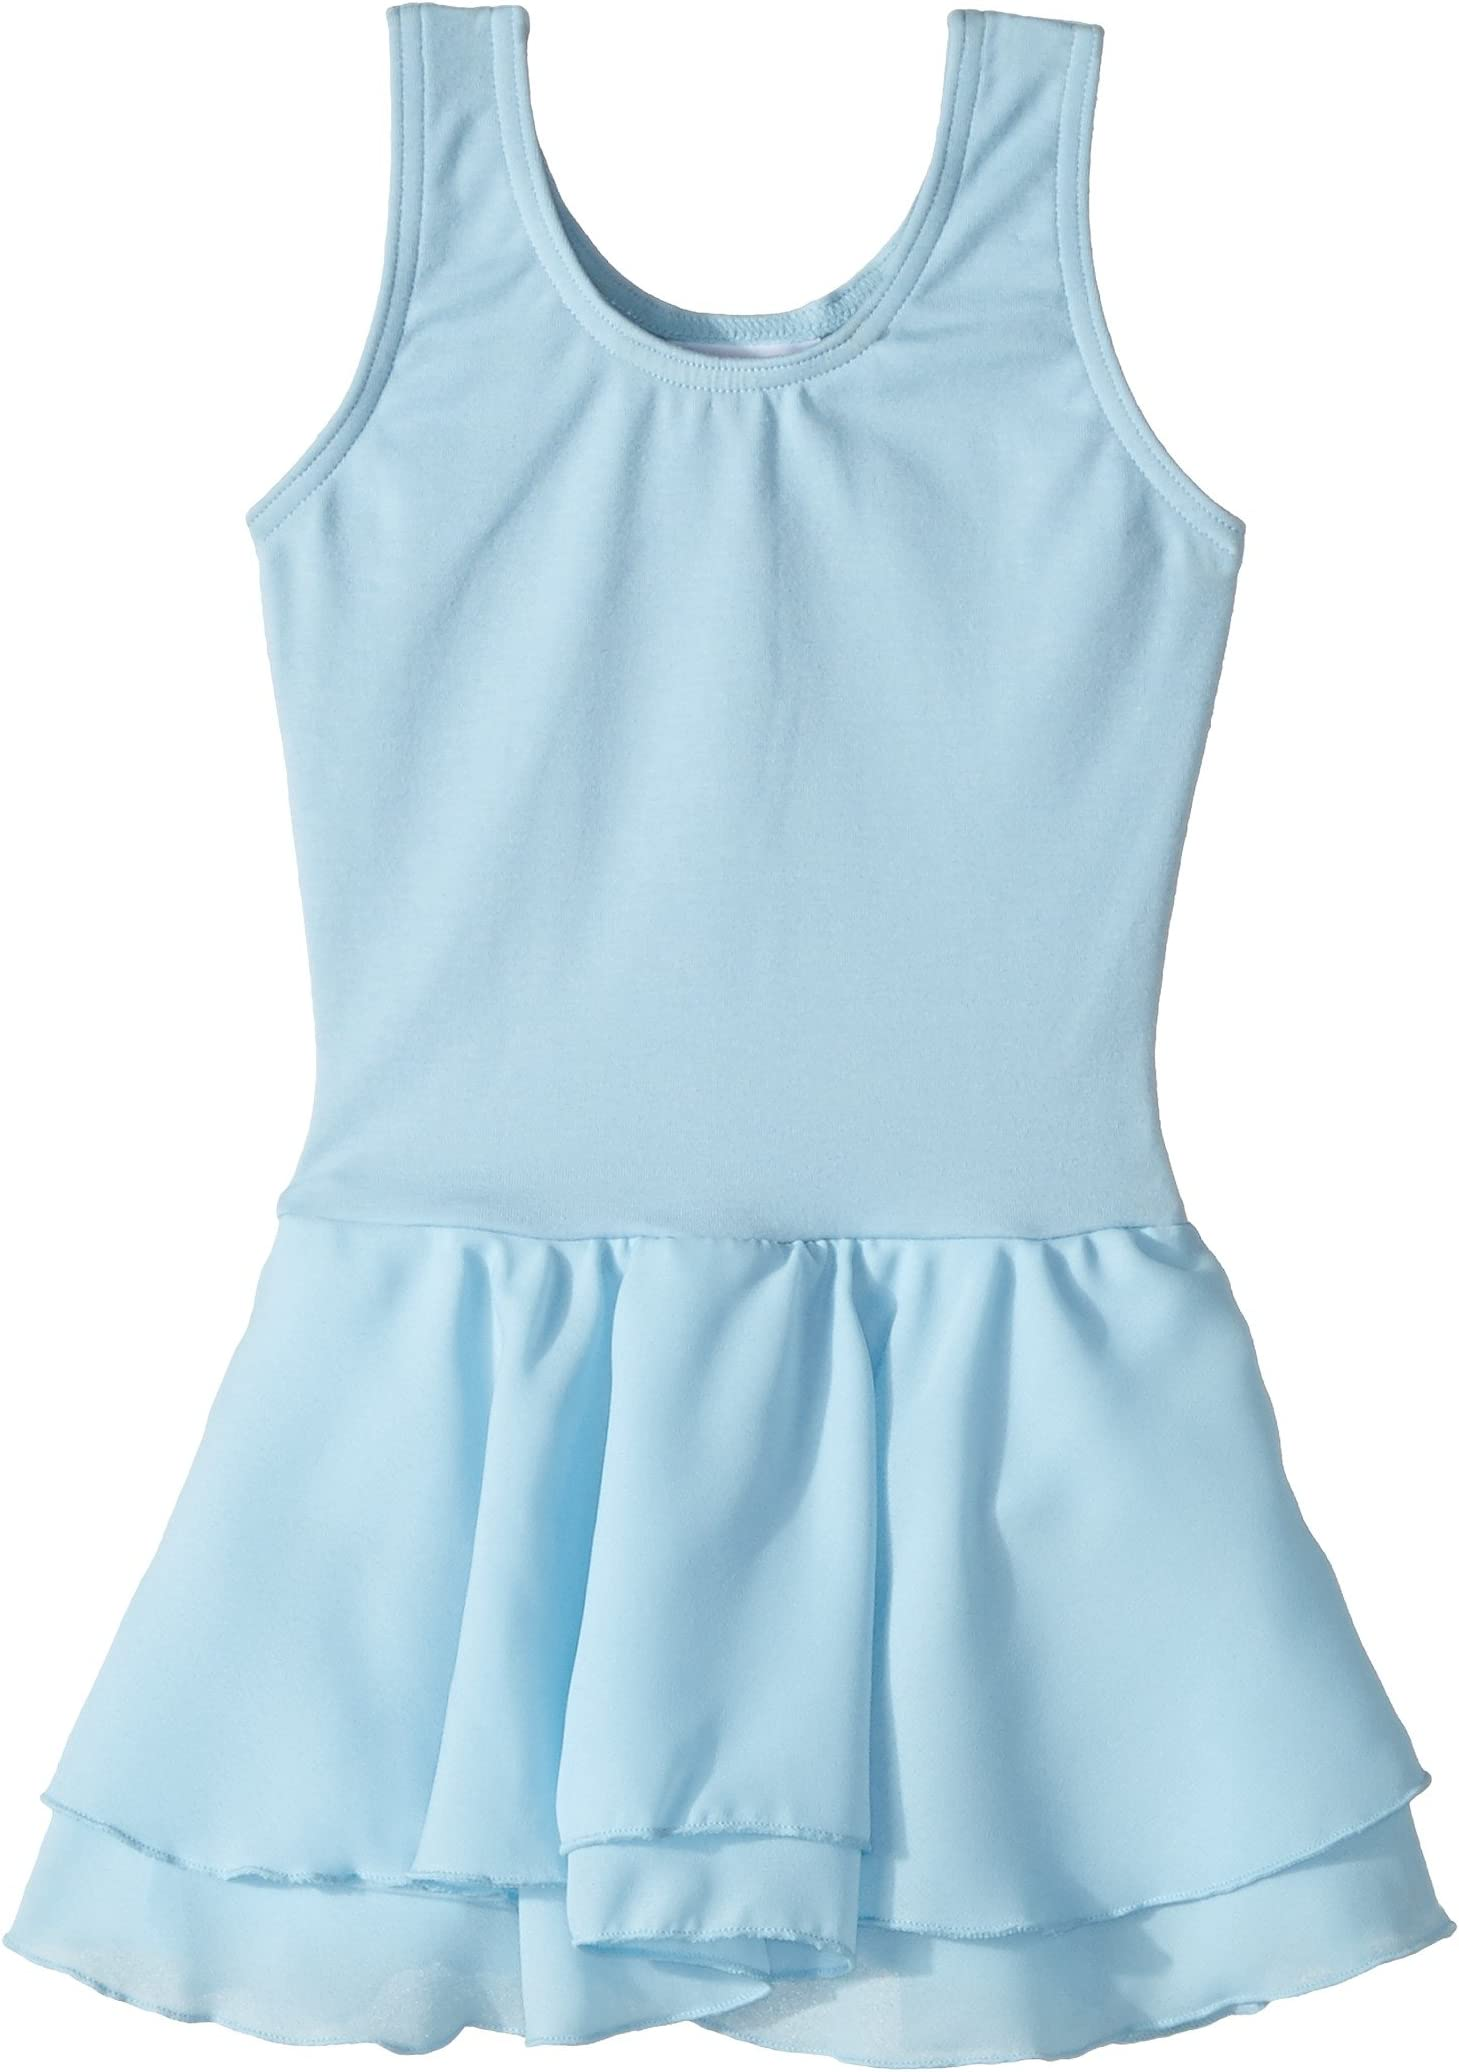 Capezio Kids Classic Double Layer Skirt Tank Dress